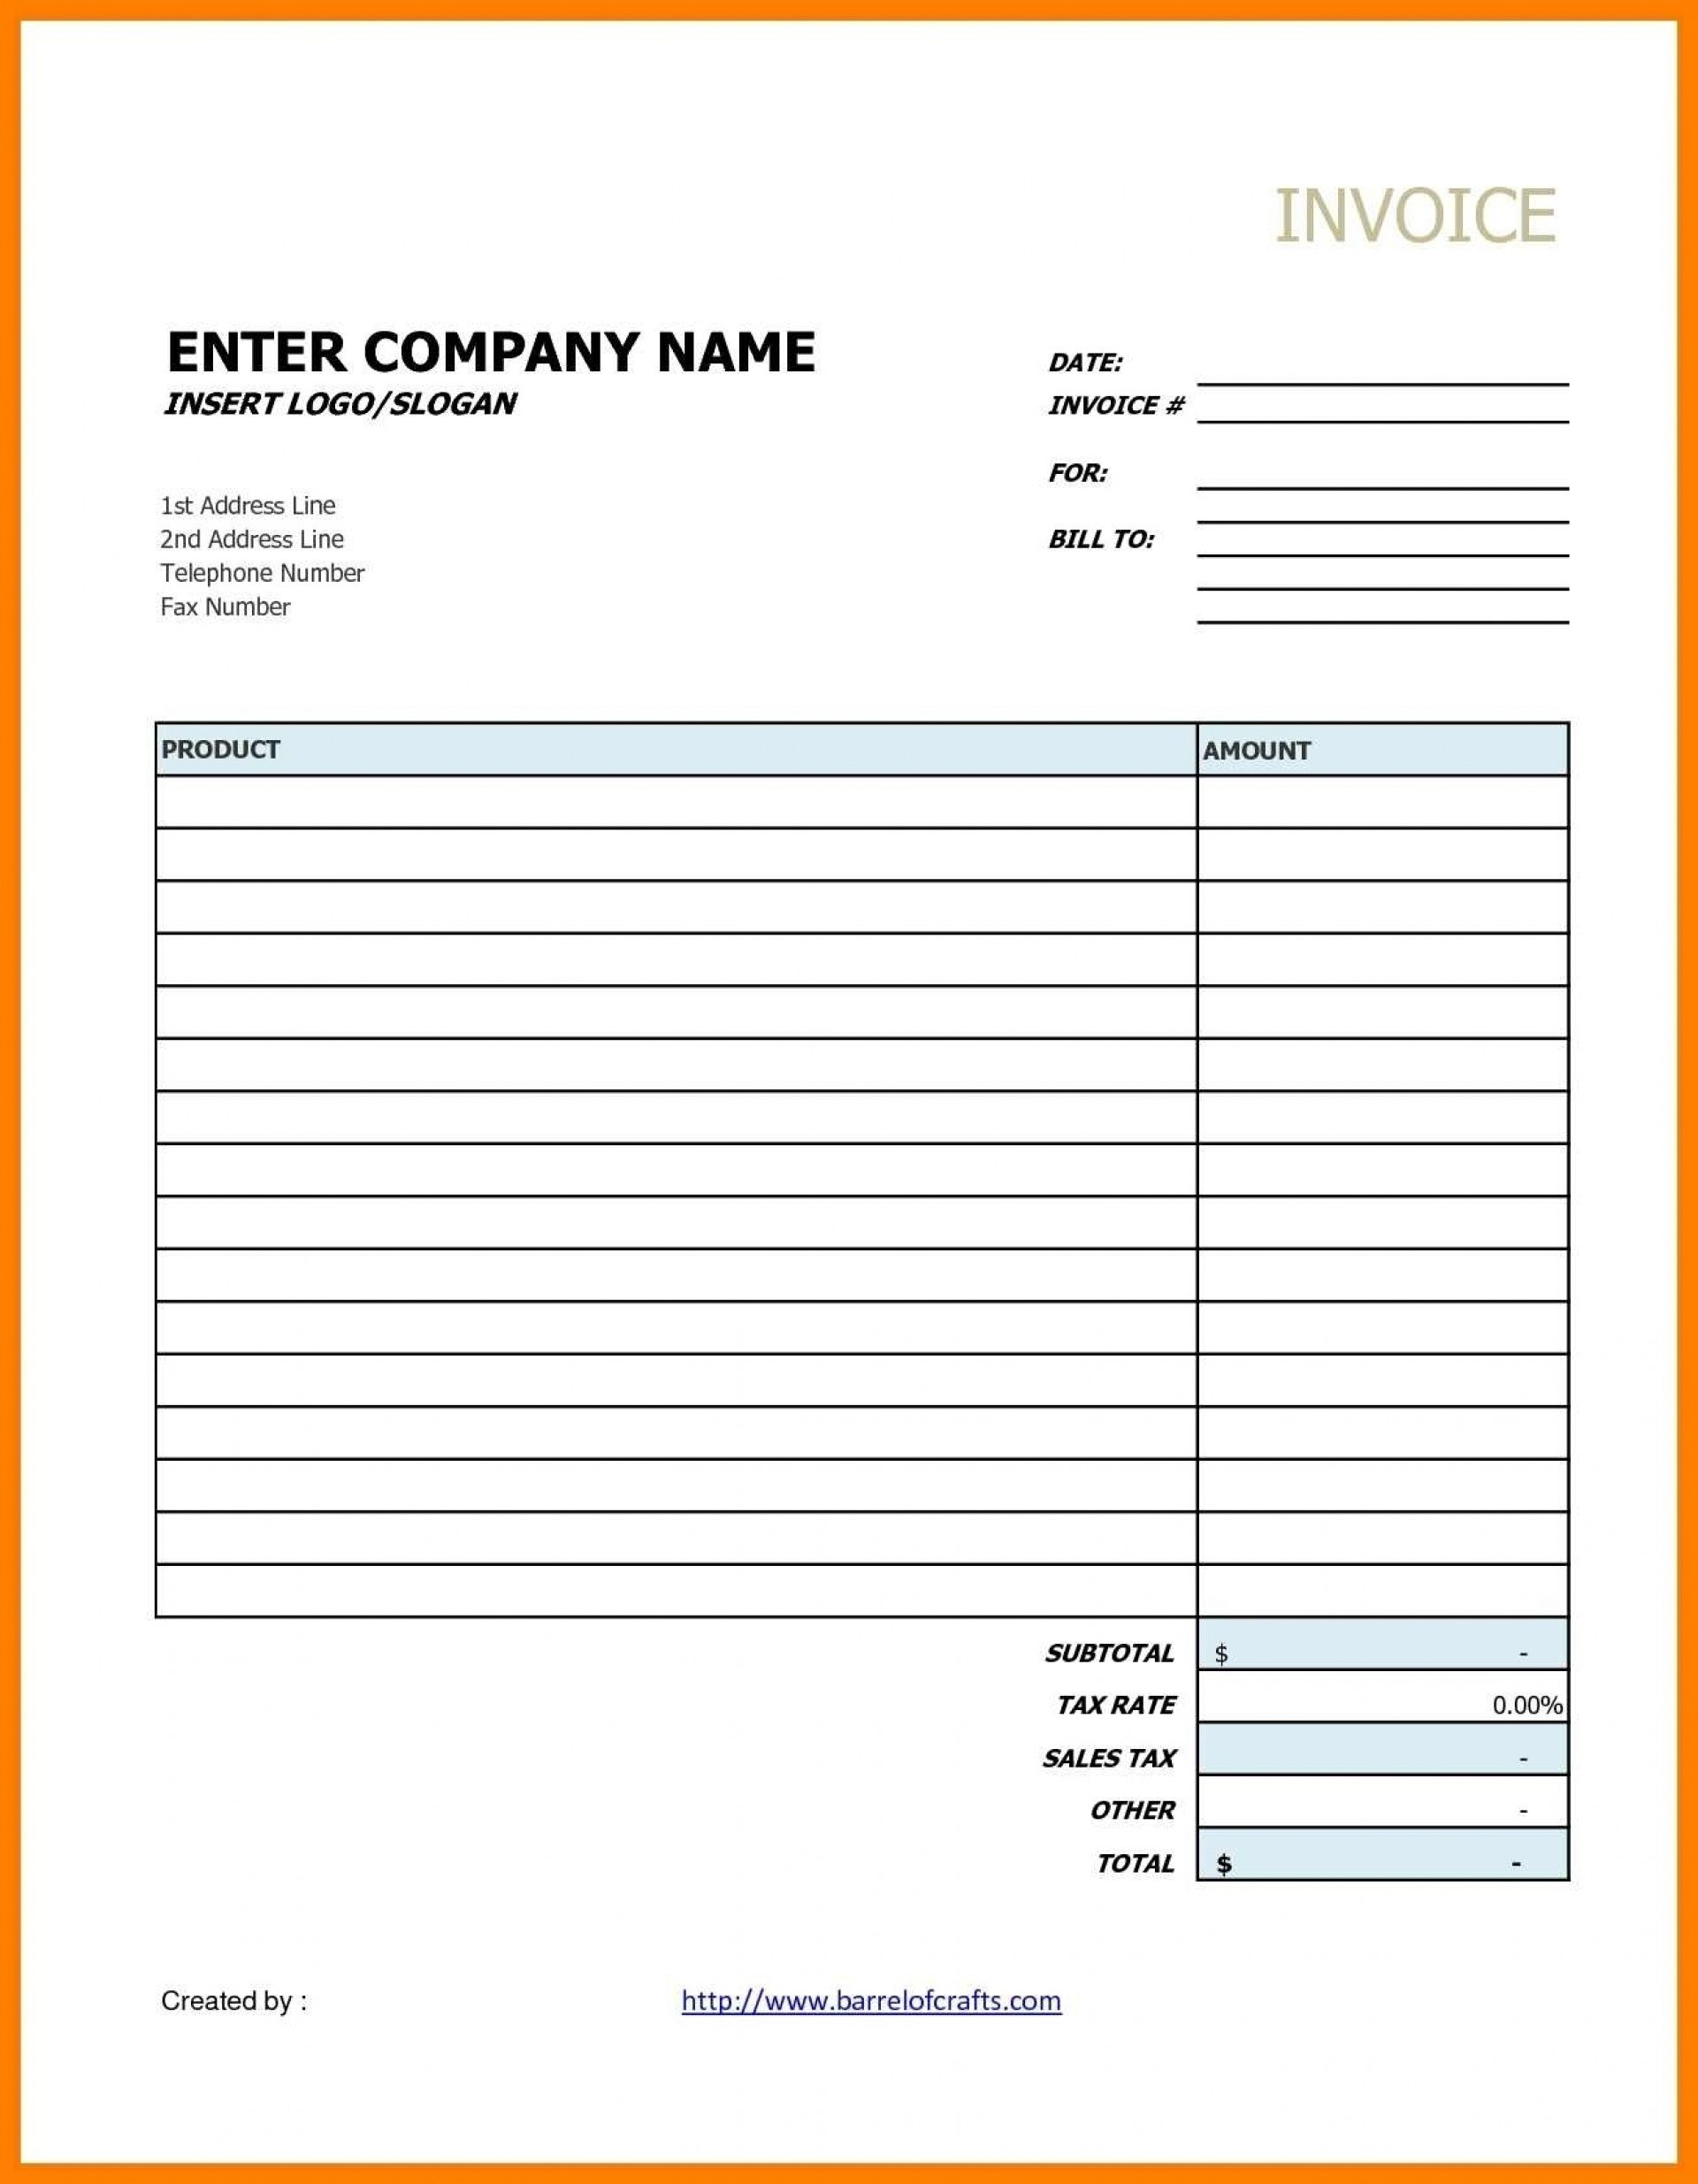 Contractor Invoice Template Plan Excellent Templates Google Docs Throughout Invoice Template Google Doc